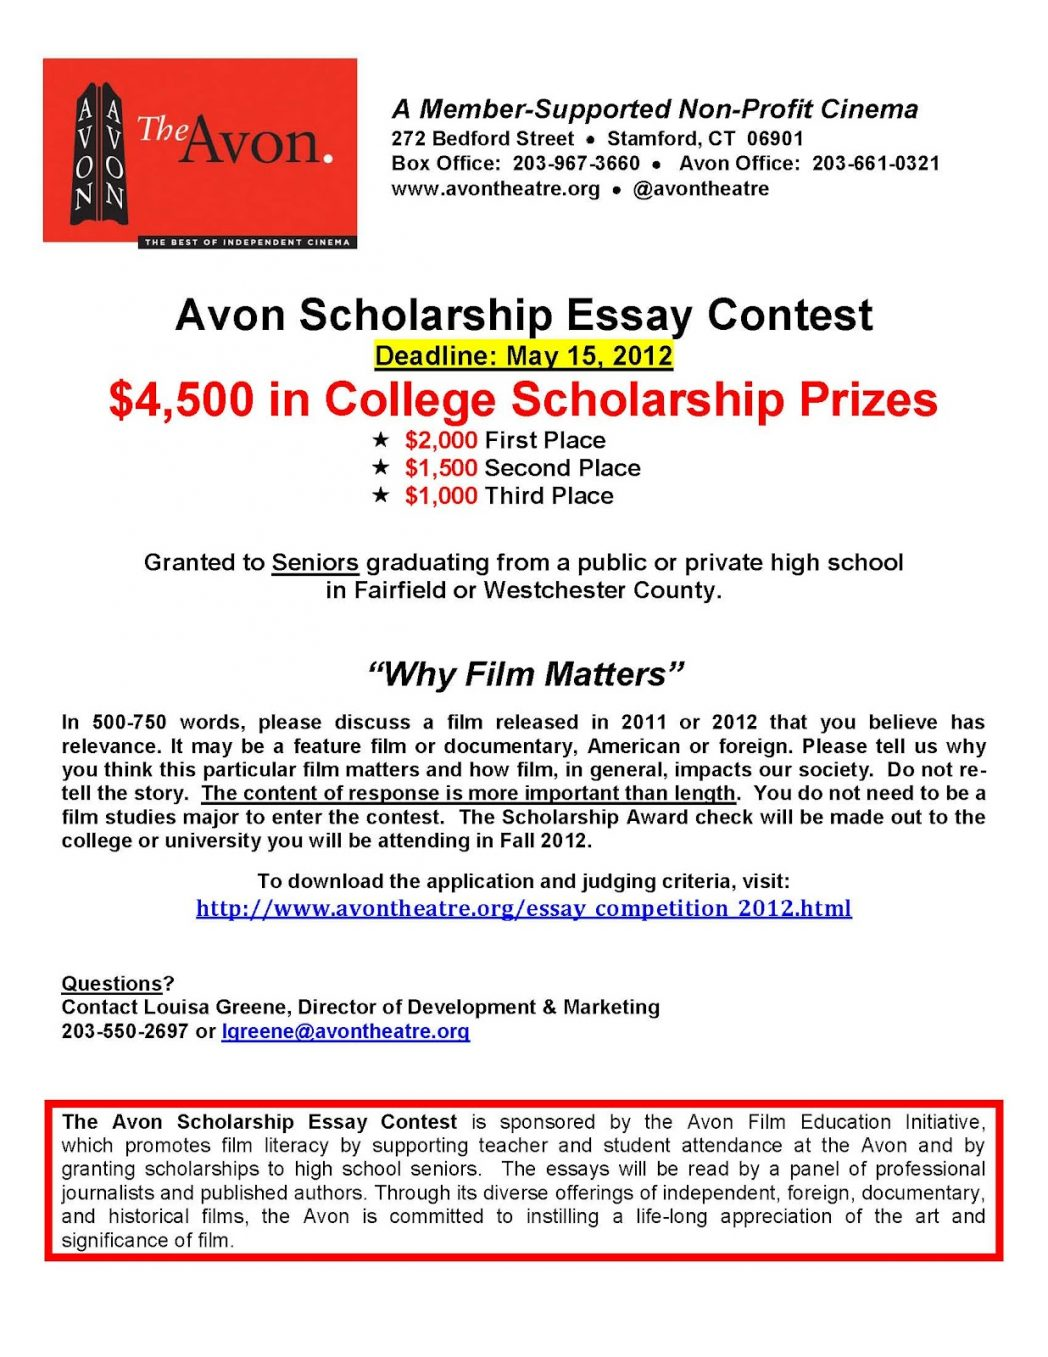 021 No Essay College Scholarship Prowler Avonscholarshipessaycontest2012 Easy Scholarships For High School Students 1048x1357 Without Astounding Essays 2019 2018 Full